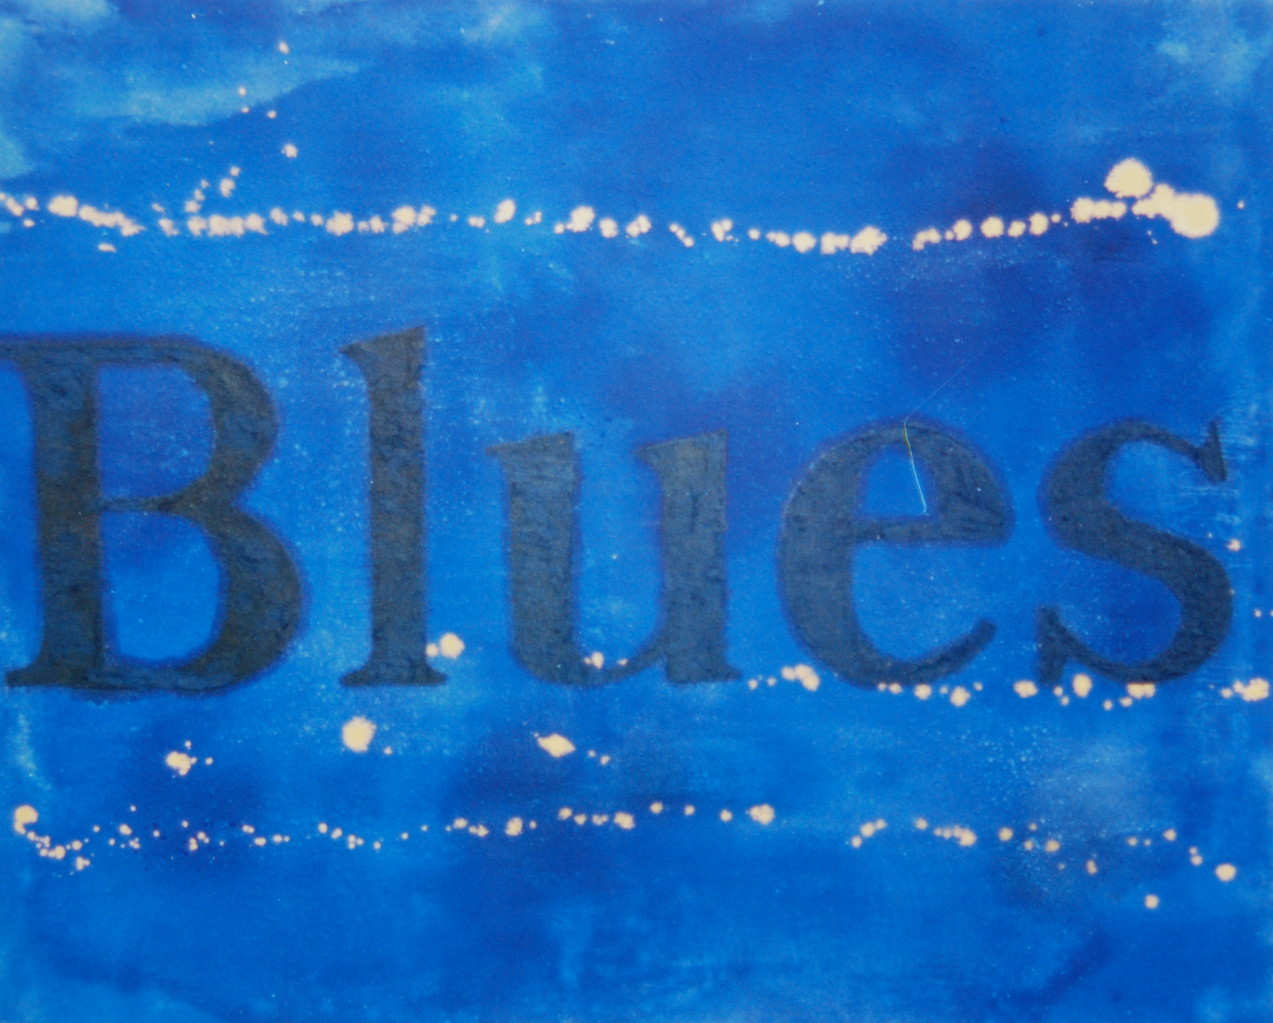 Blues, 1990, 132 x 105, Privatsammlung Dr. Doldinger